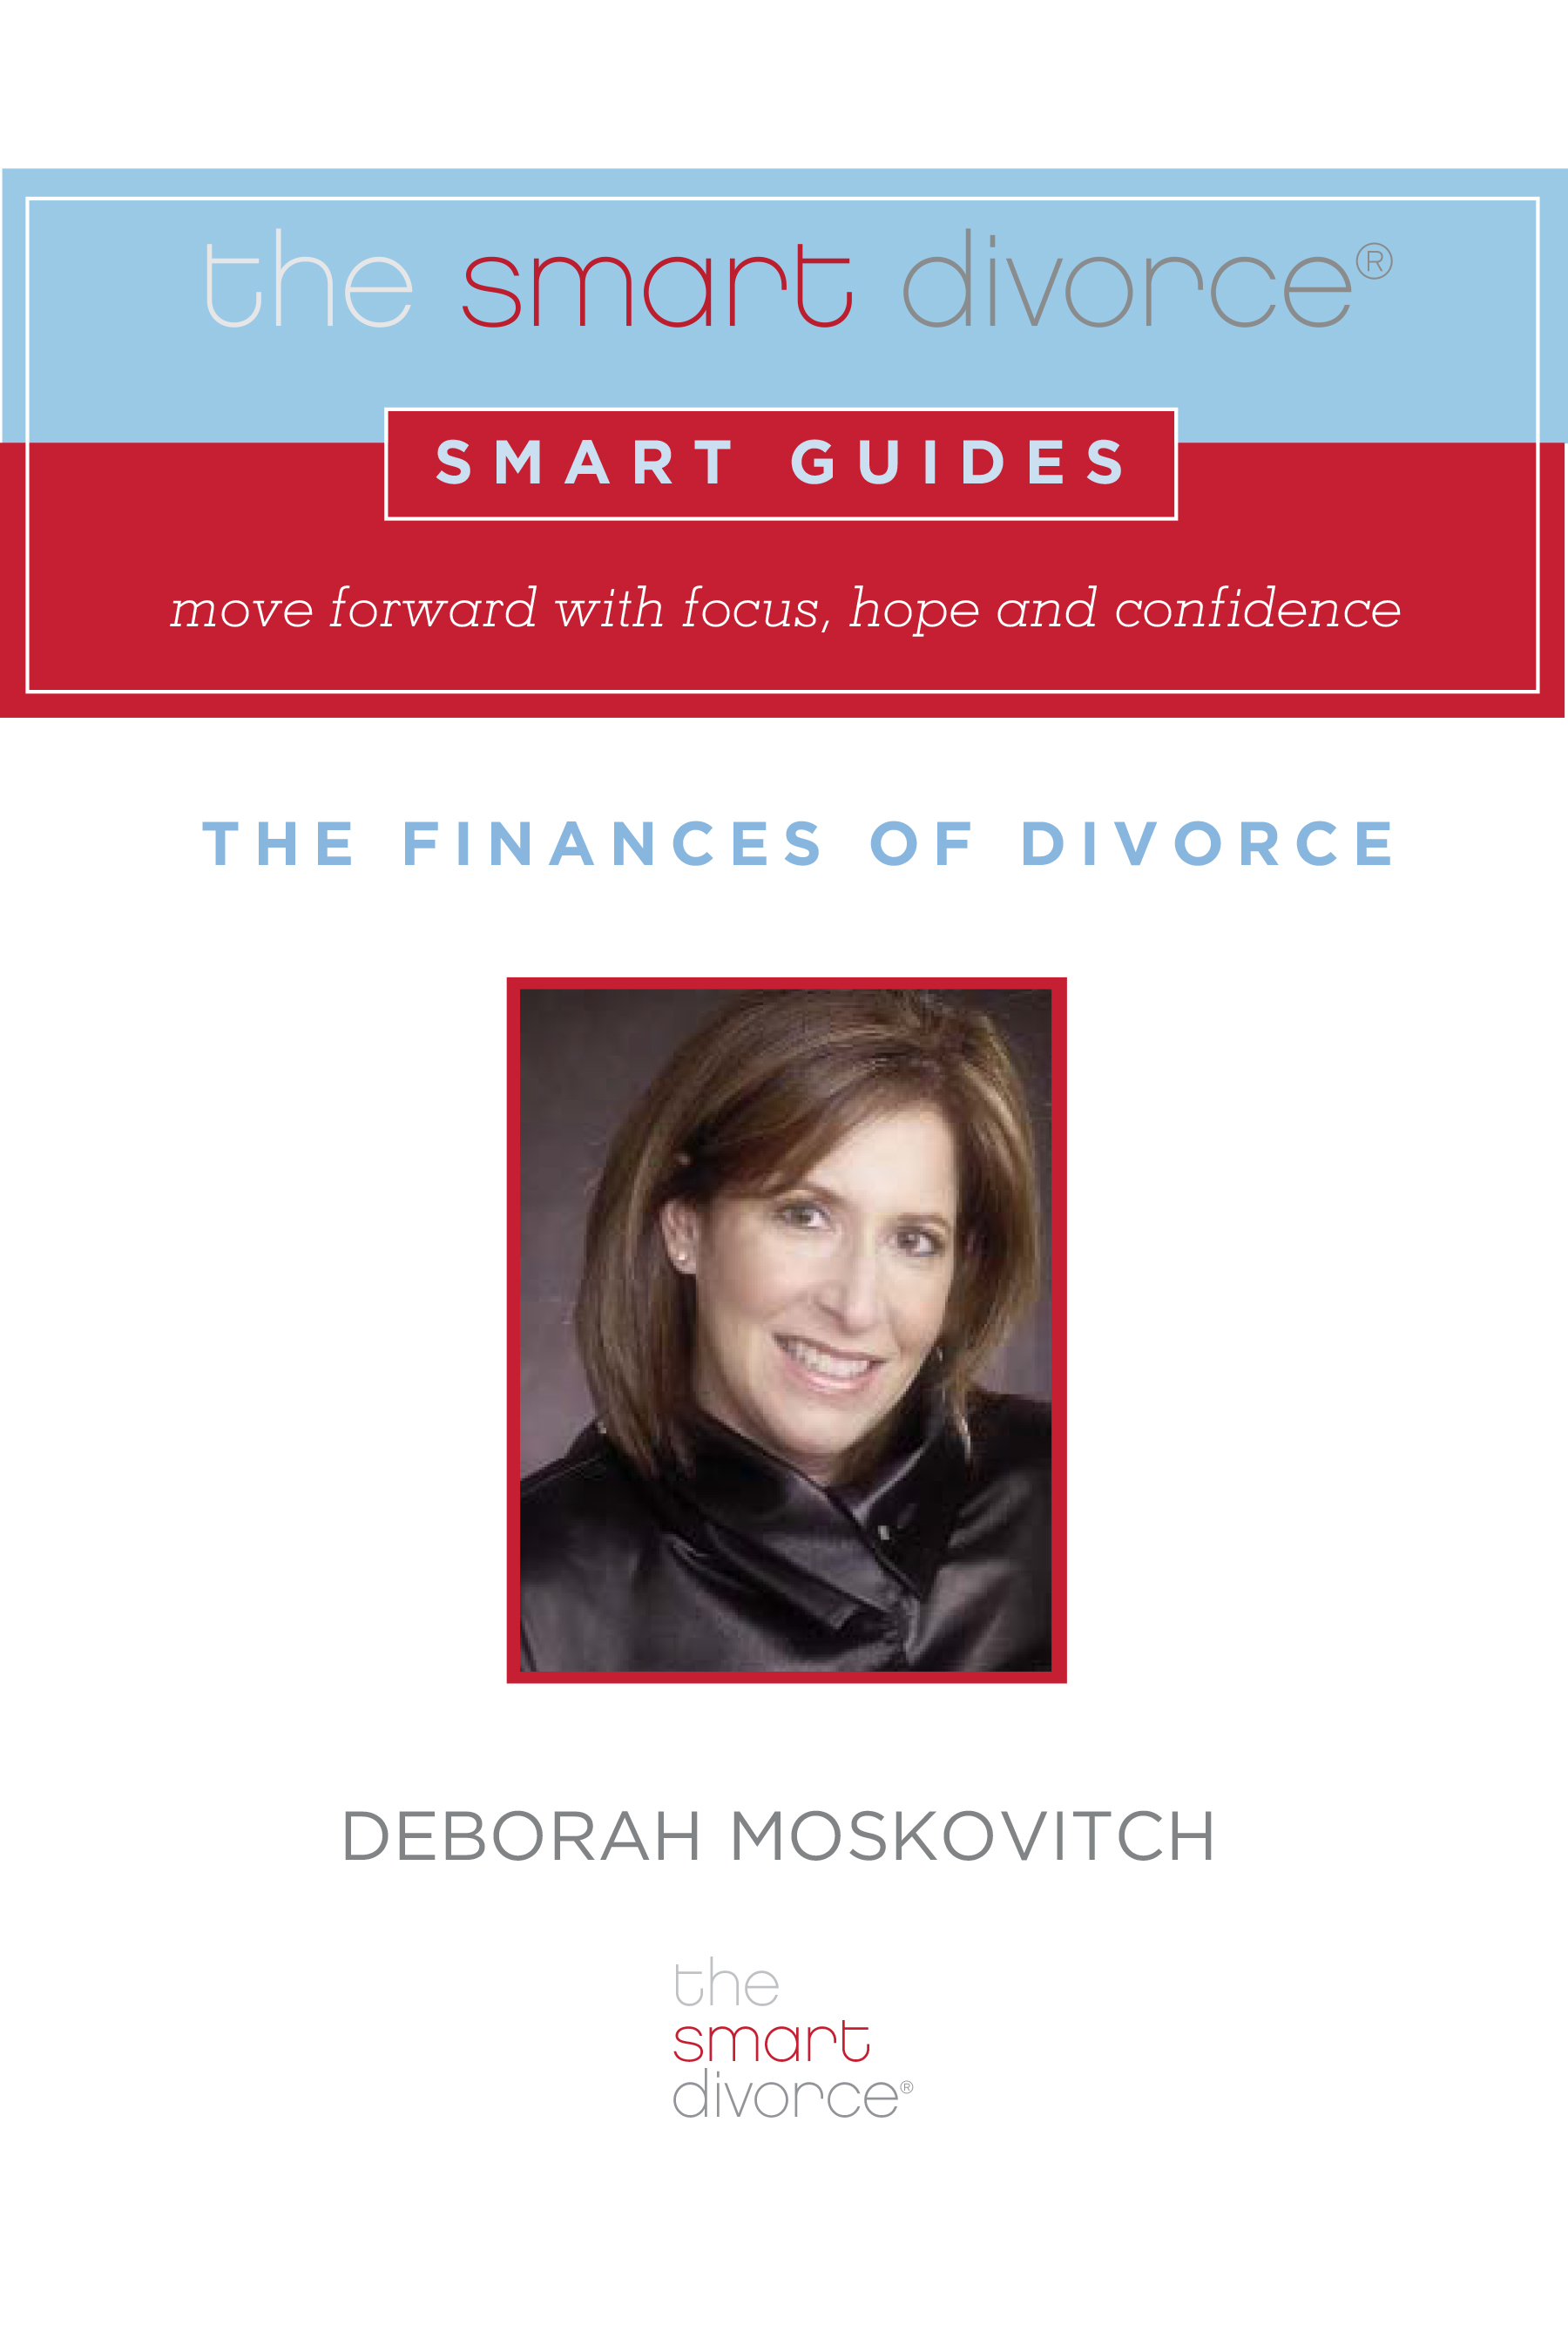 The Smart Divorce Smart Guide: The Finances of Divorce